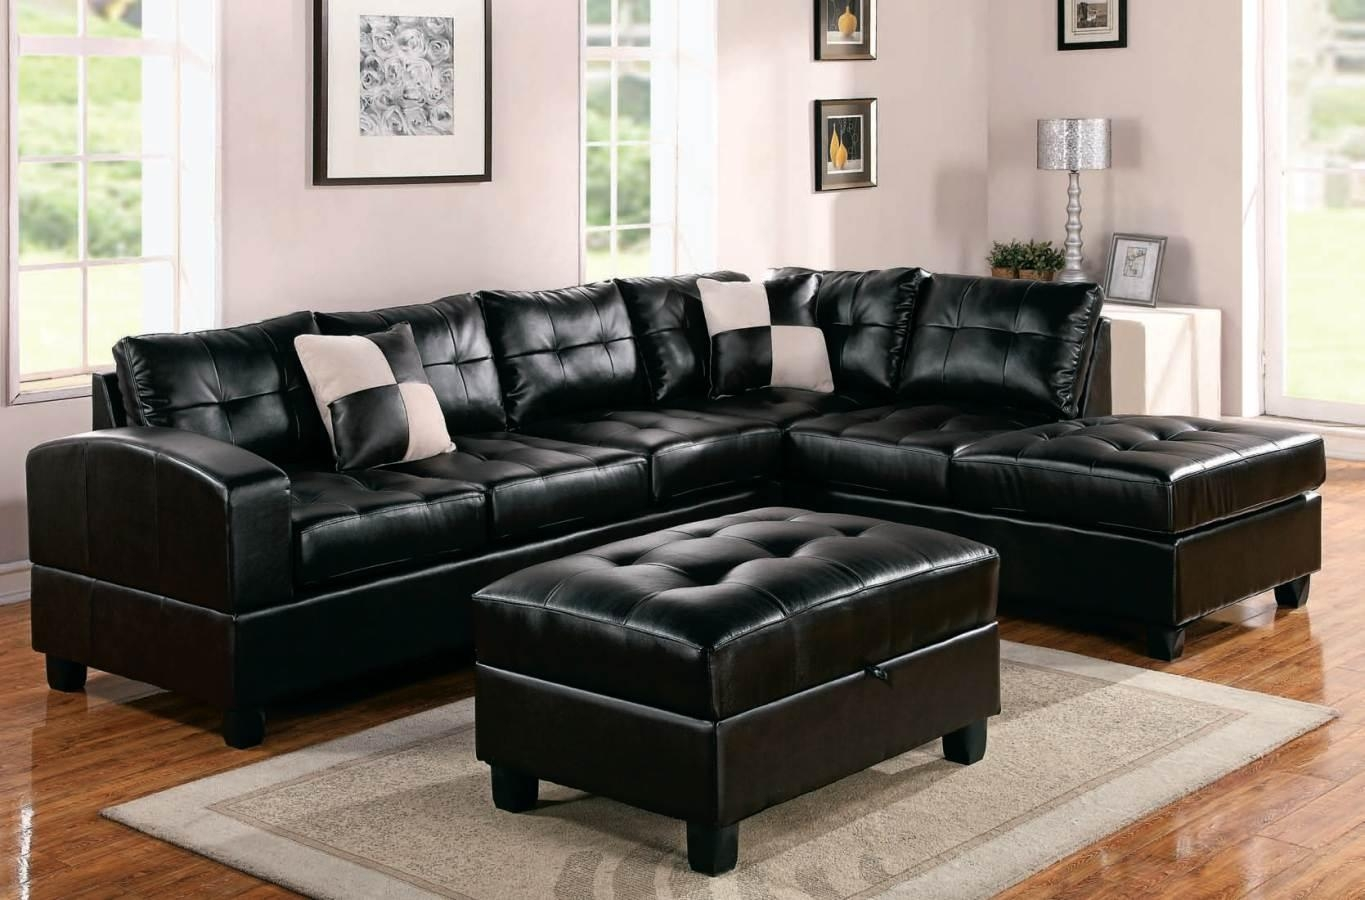 Leather Sectionals For Sale 21 Collection Of Black Leather Sectional Sleeper Sofas